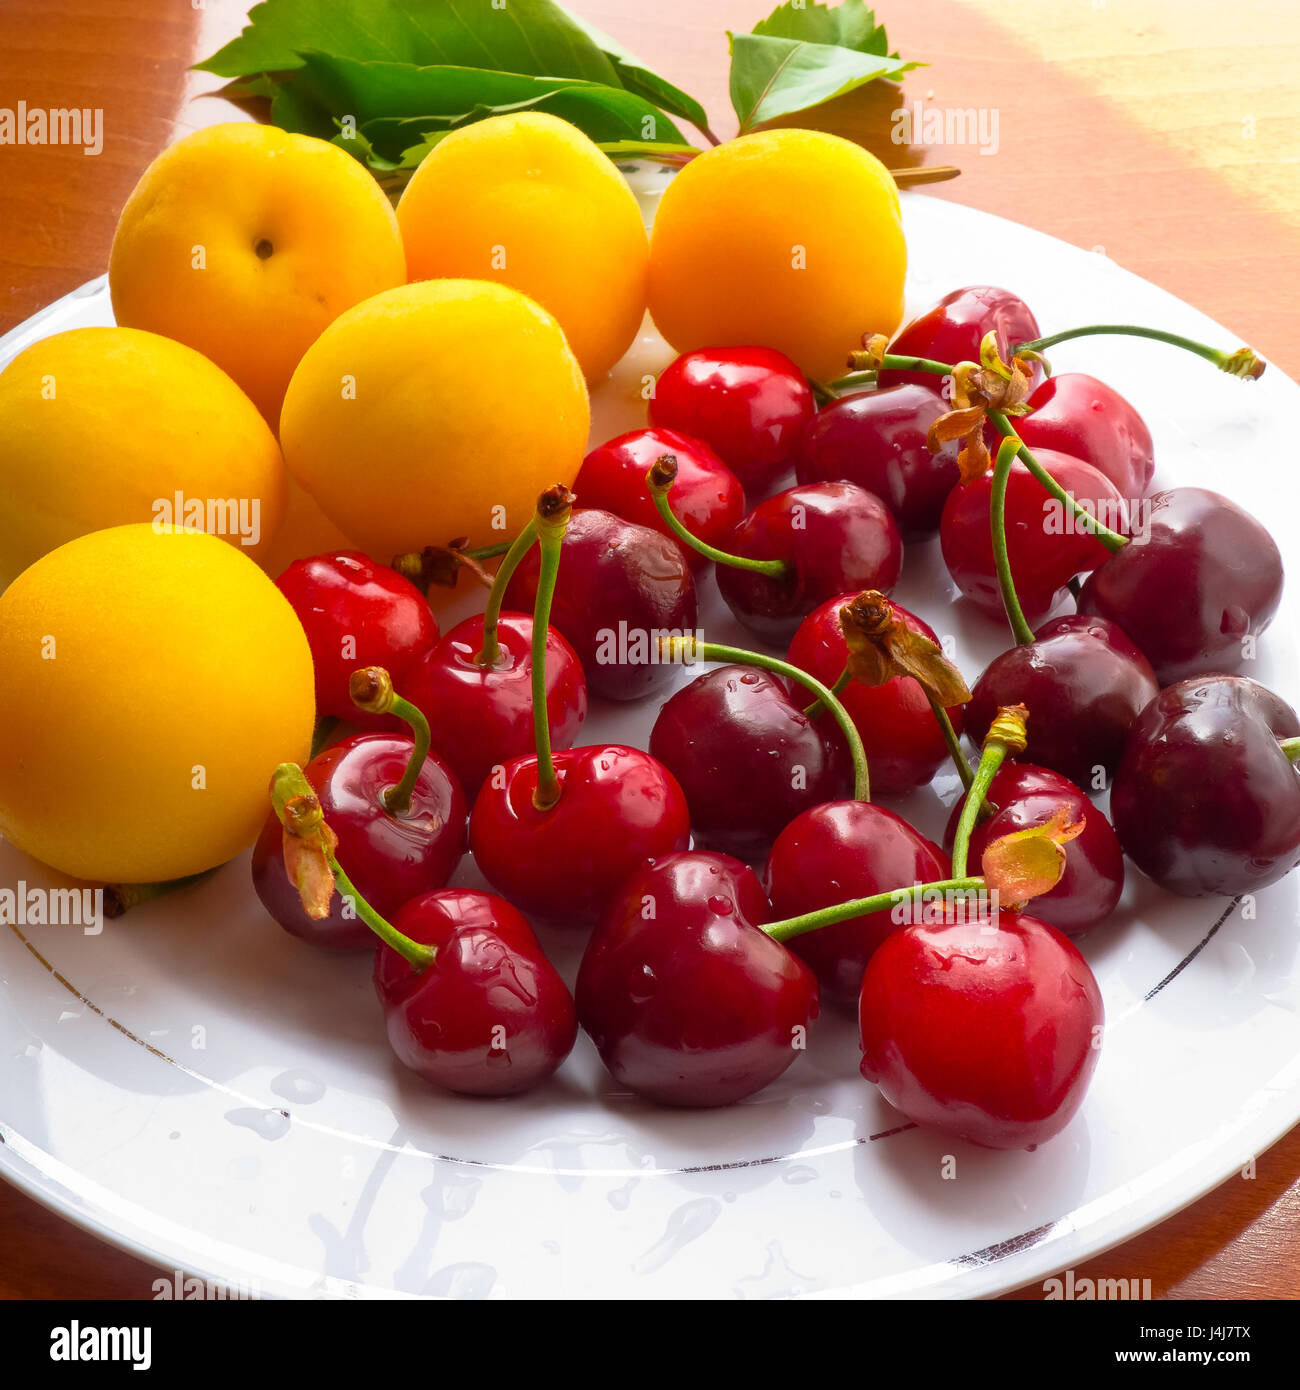 Apricots and fresh cherries. - Stock Image